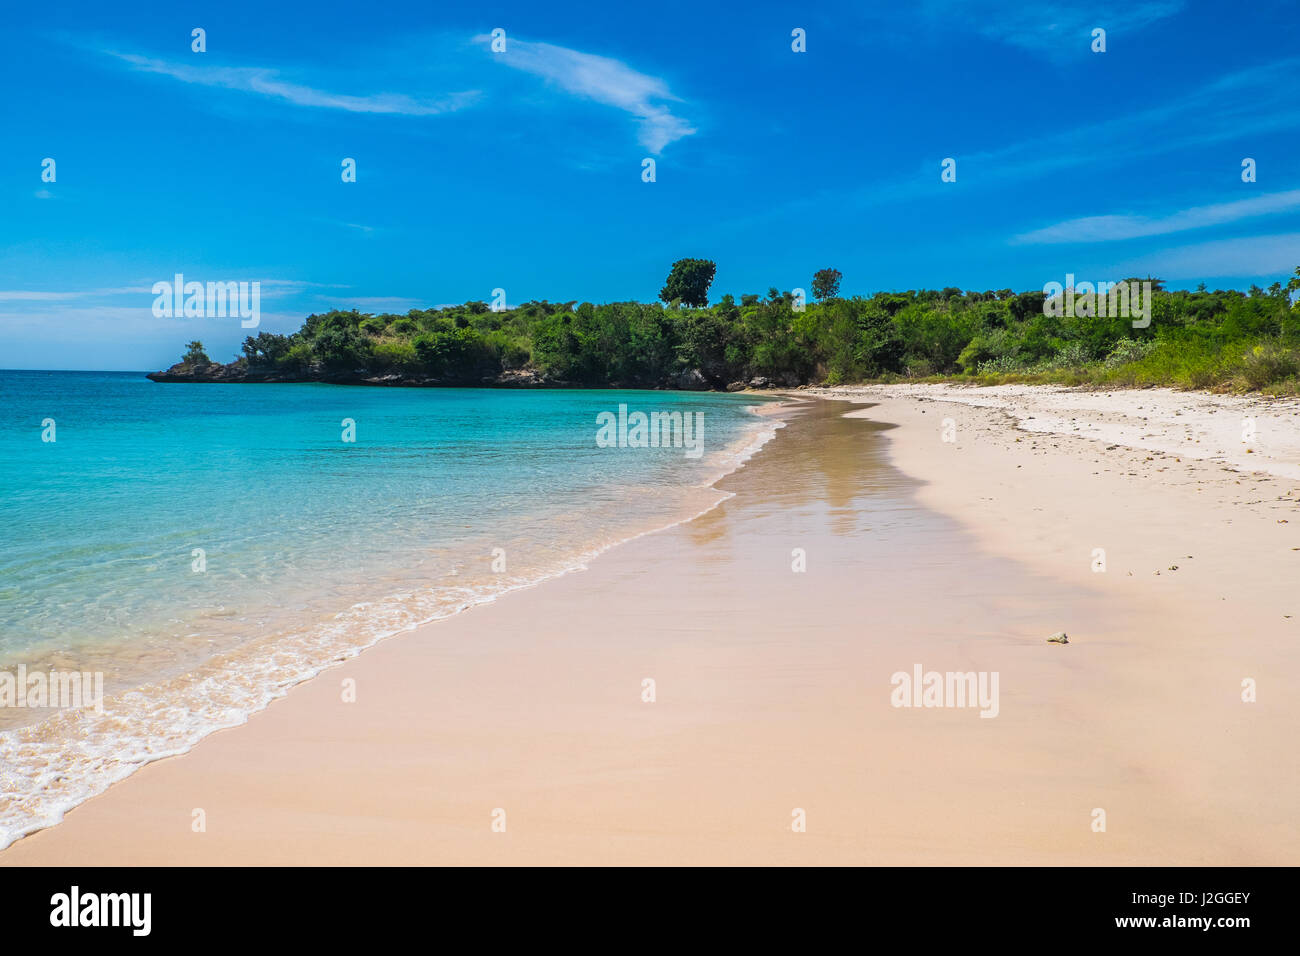 Exotic beach in some remote islands off Lombok Indonesia. - Stock Image